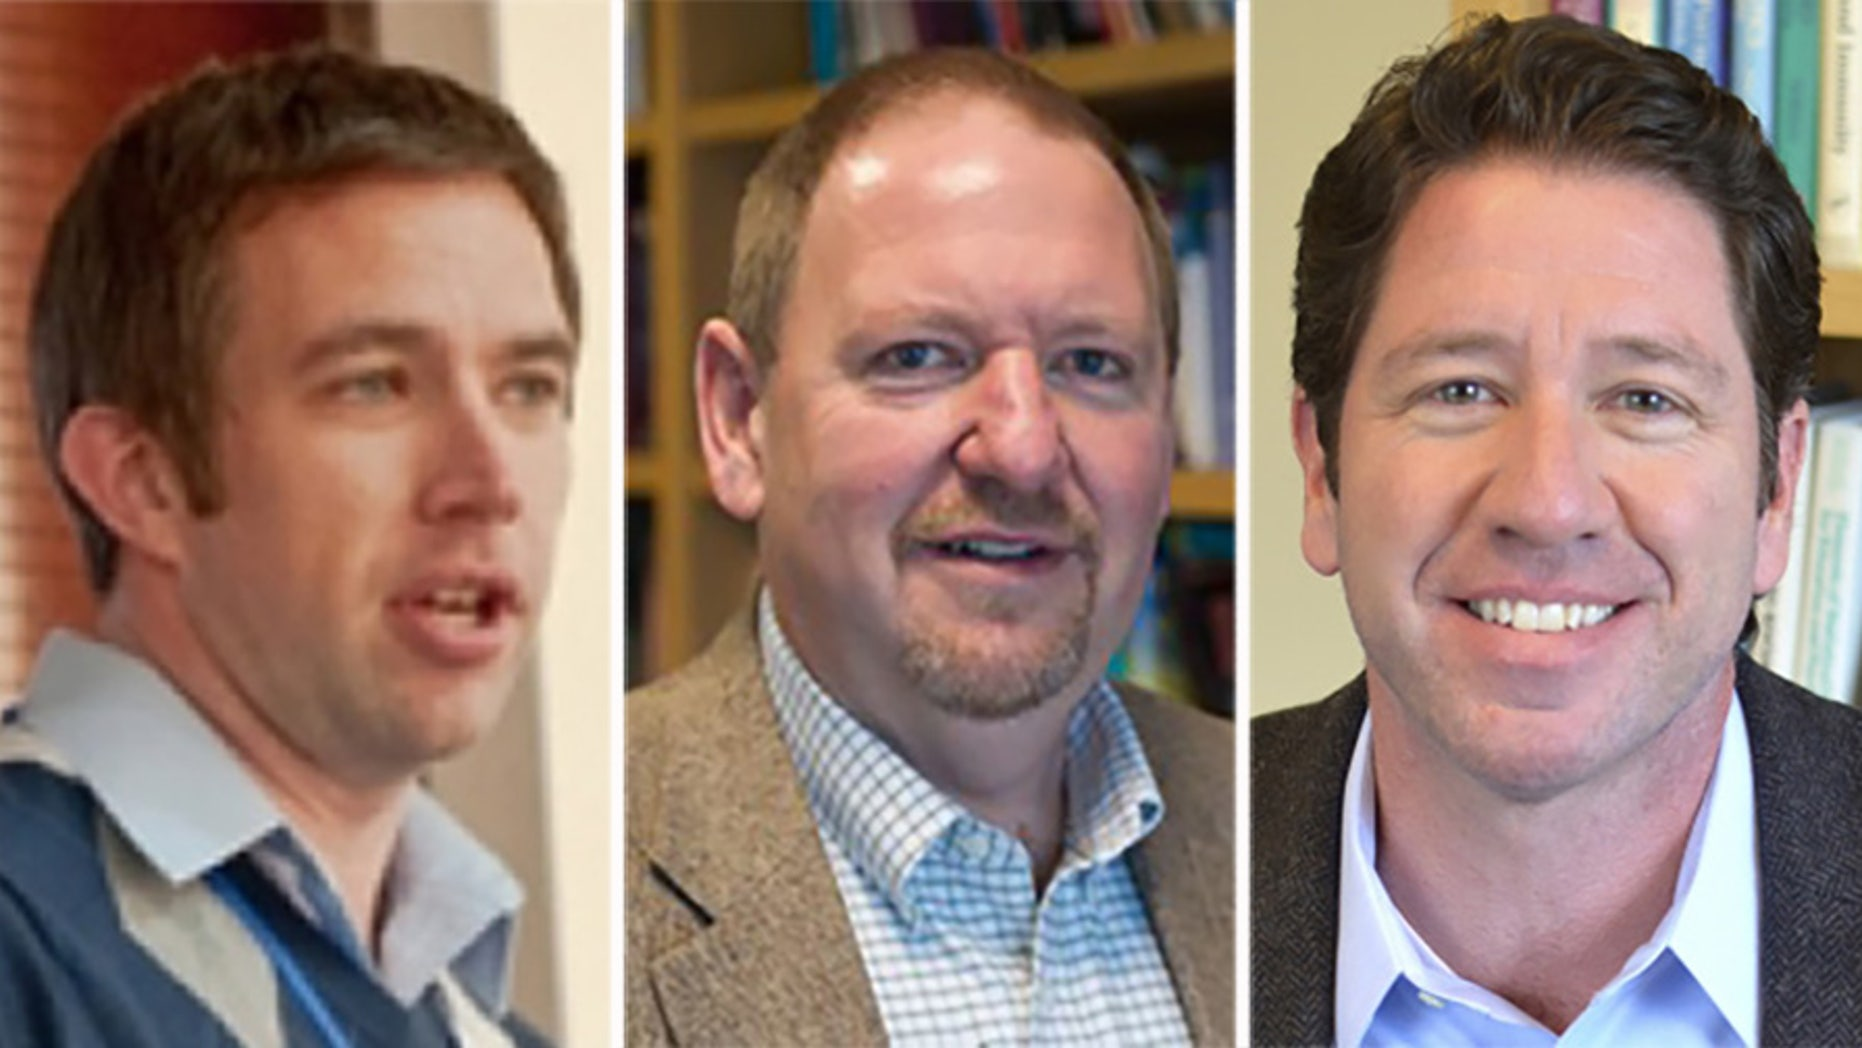 L-R: Bill Kelley, Todd Heartherton and Paul Whallen